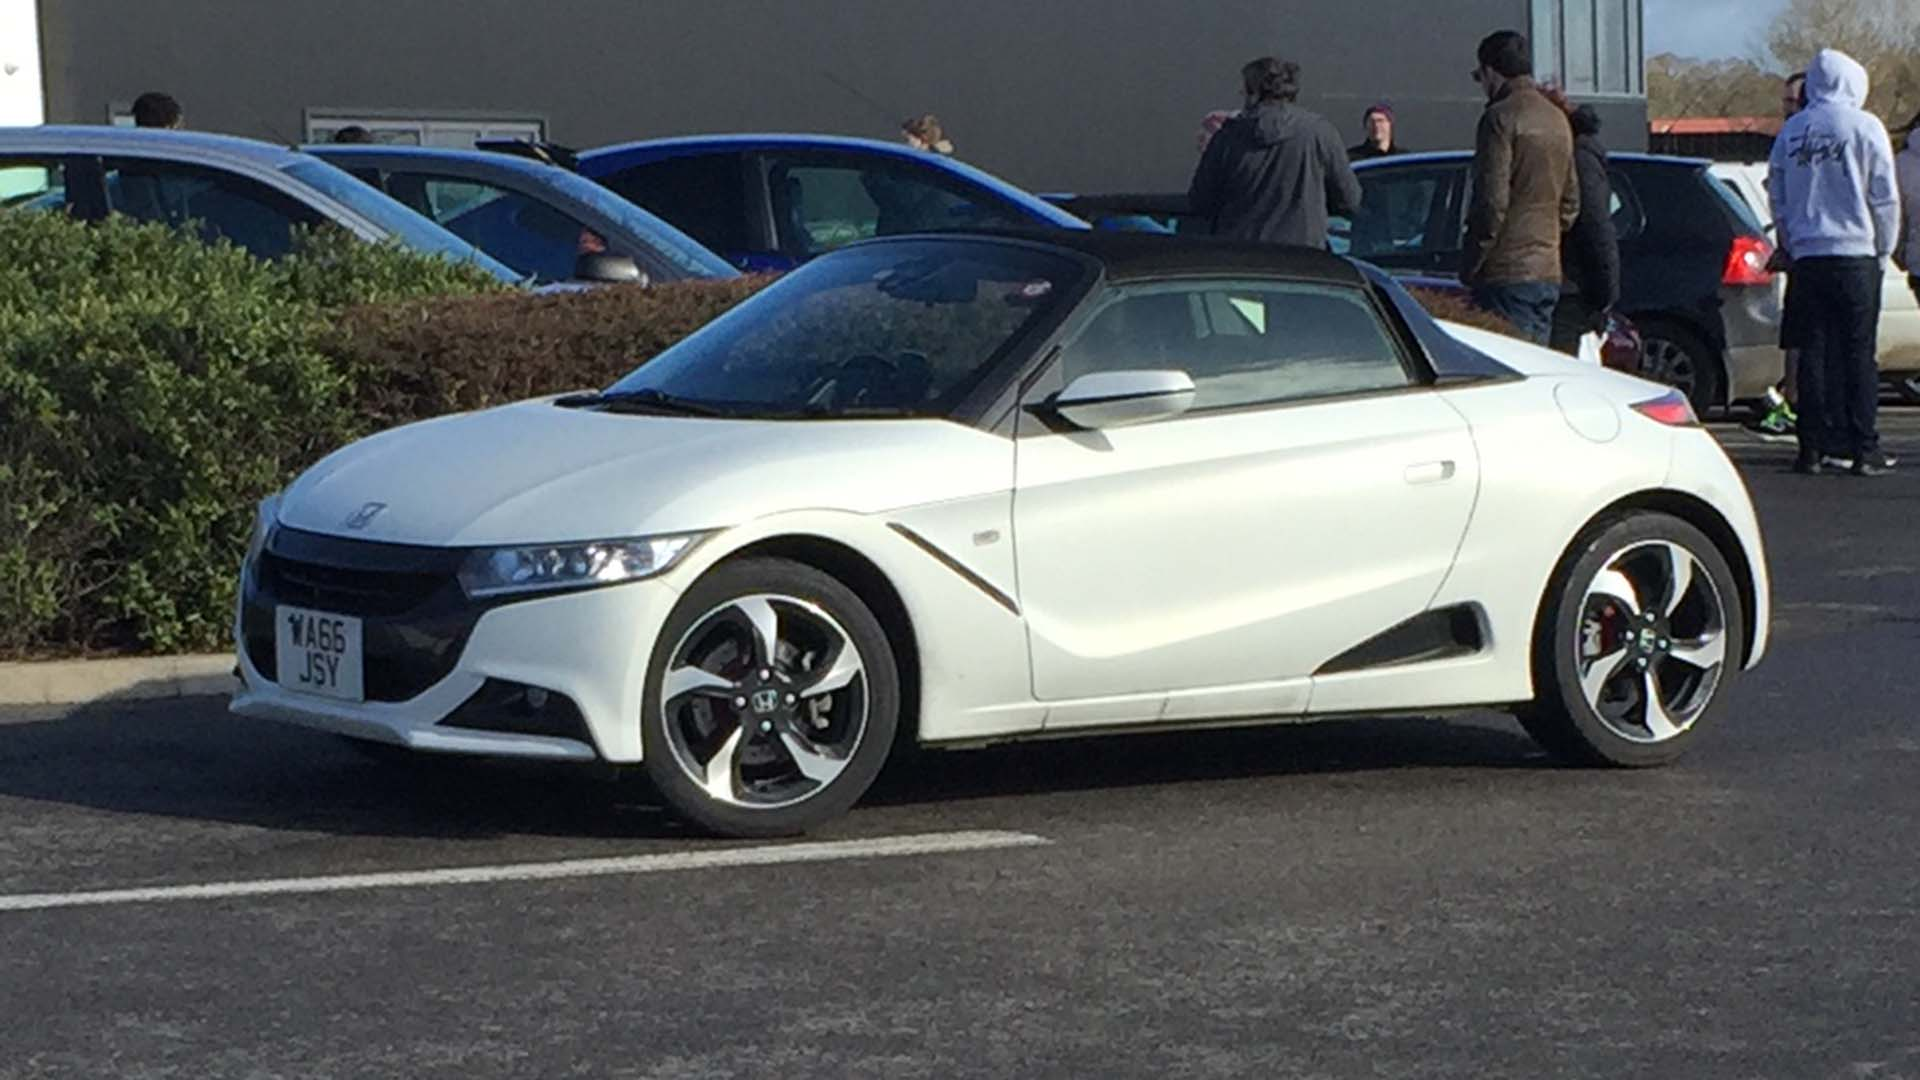 Honda S660 in the UK